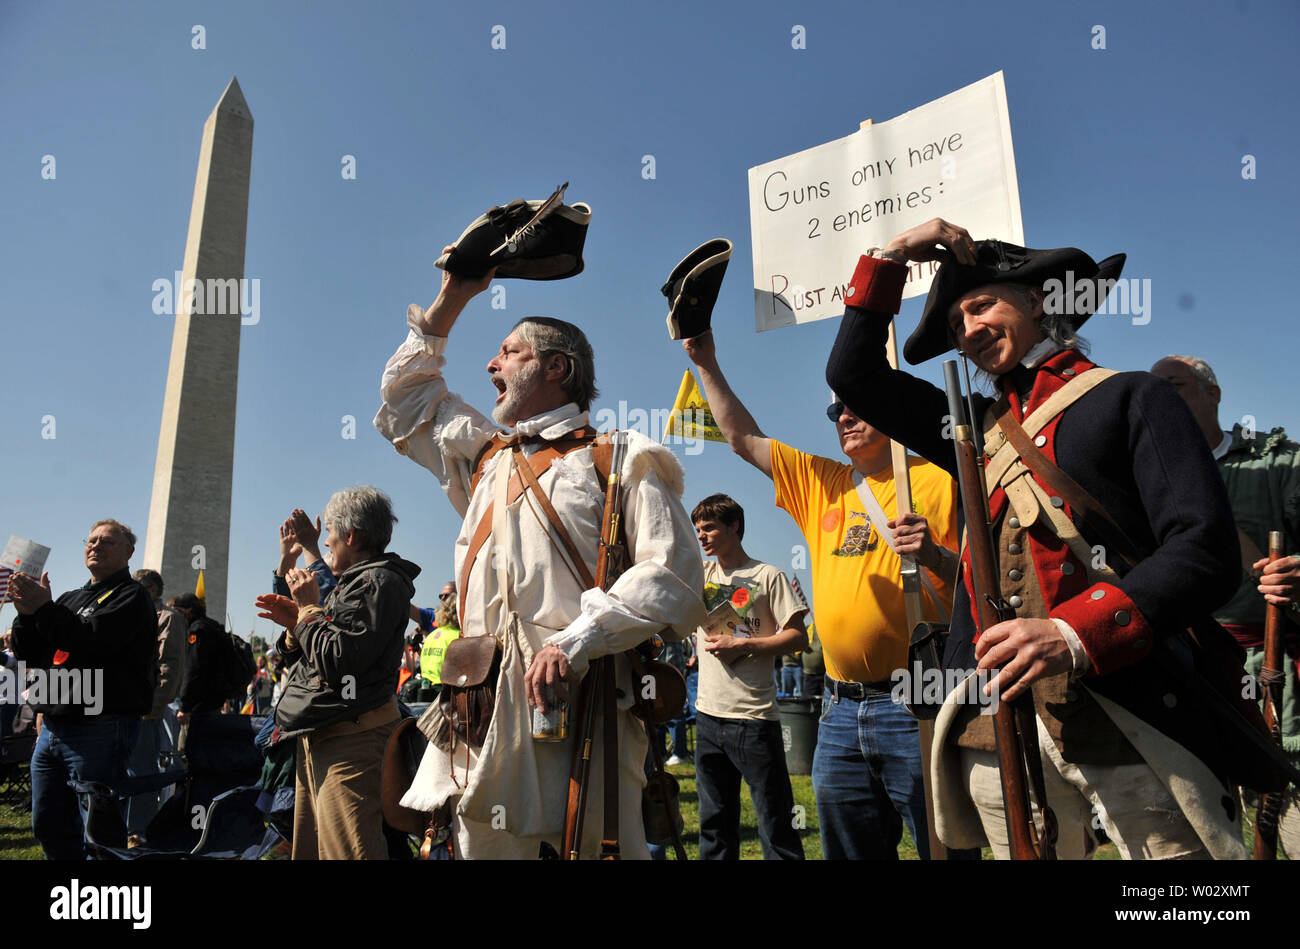 People dressed as Minutemen from the Revolutionary War attend a second amendment rally on the grounds of the Washington Monument, in Washington on April 19, 2010. Pro-gun rallies where held around the country today, also known as Patriots' Day, the anniversary of the American Revolutionary War battles of Lexington and Concord and the Oklahoma City bombing.    UPI/Kevin Dietsch Stock Photo